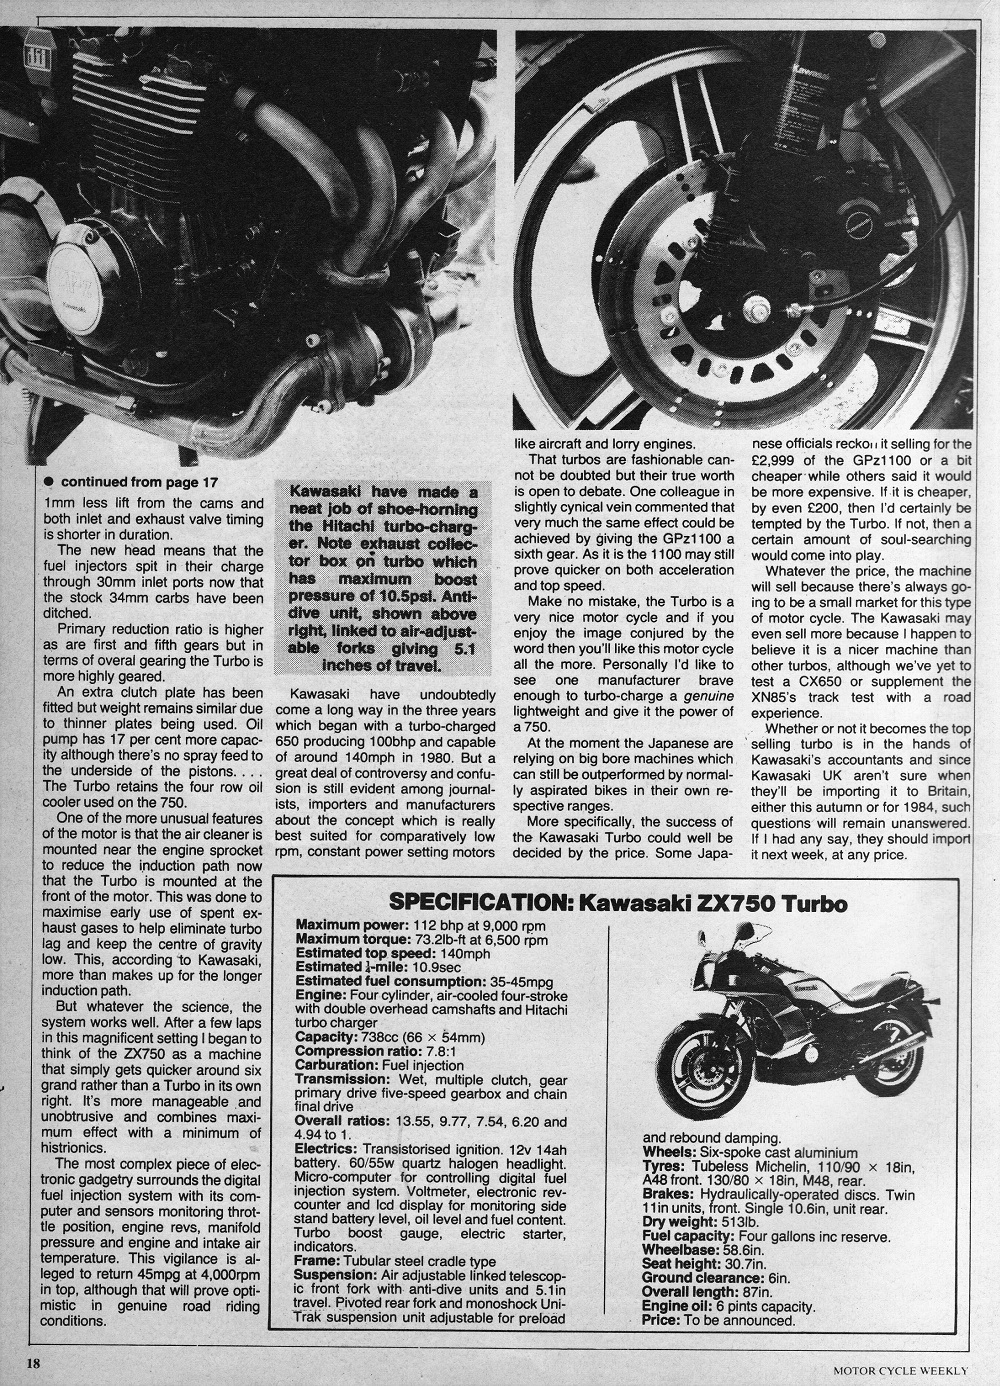 1983 Kawasaki Gpz750 Turbo road test.4.jpg